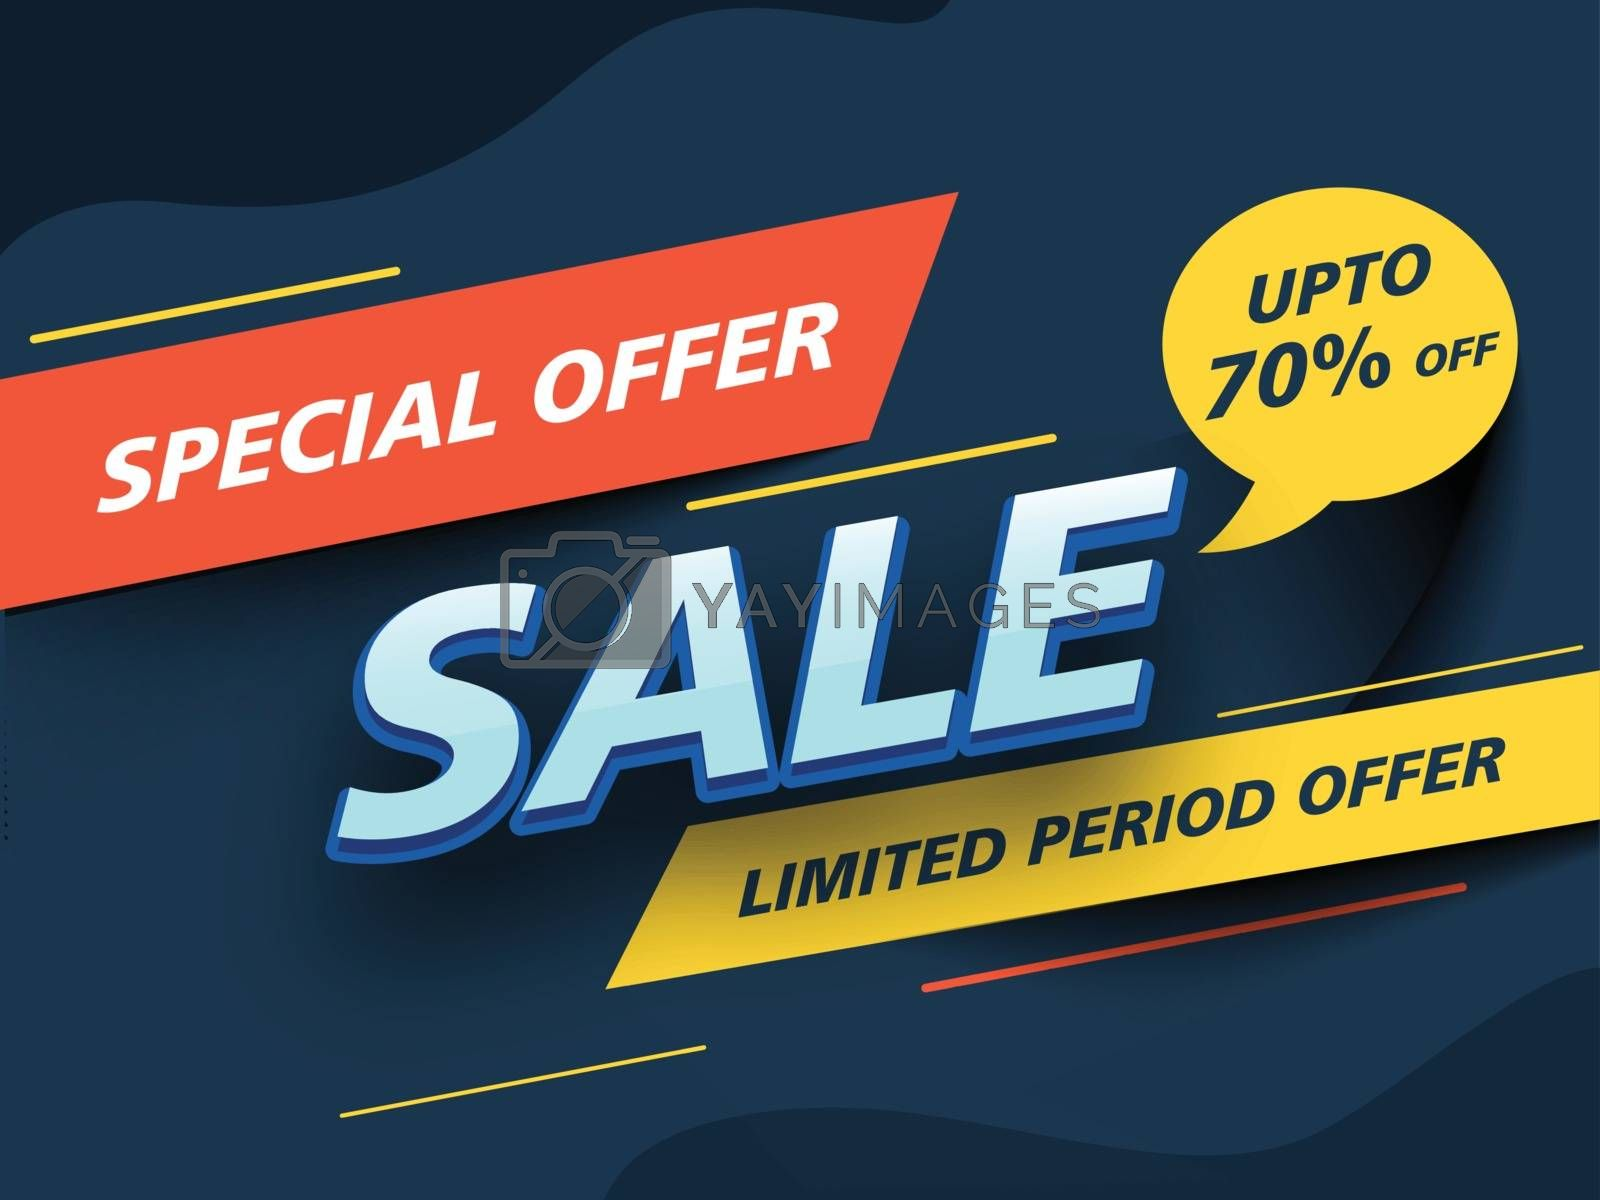 Royalty free image of Sale poster or banner design with Special Offer Up To 70% Discou by aispl